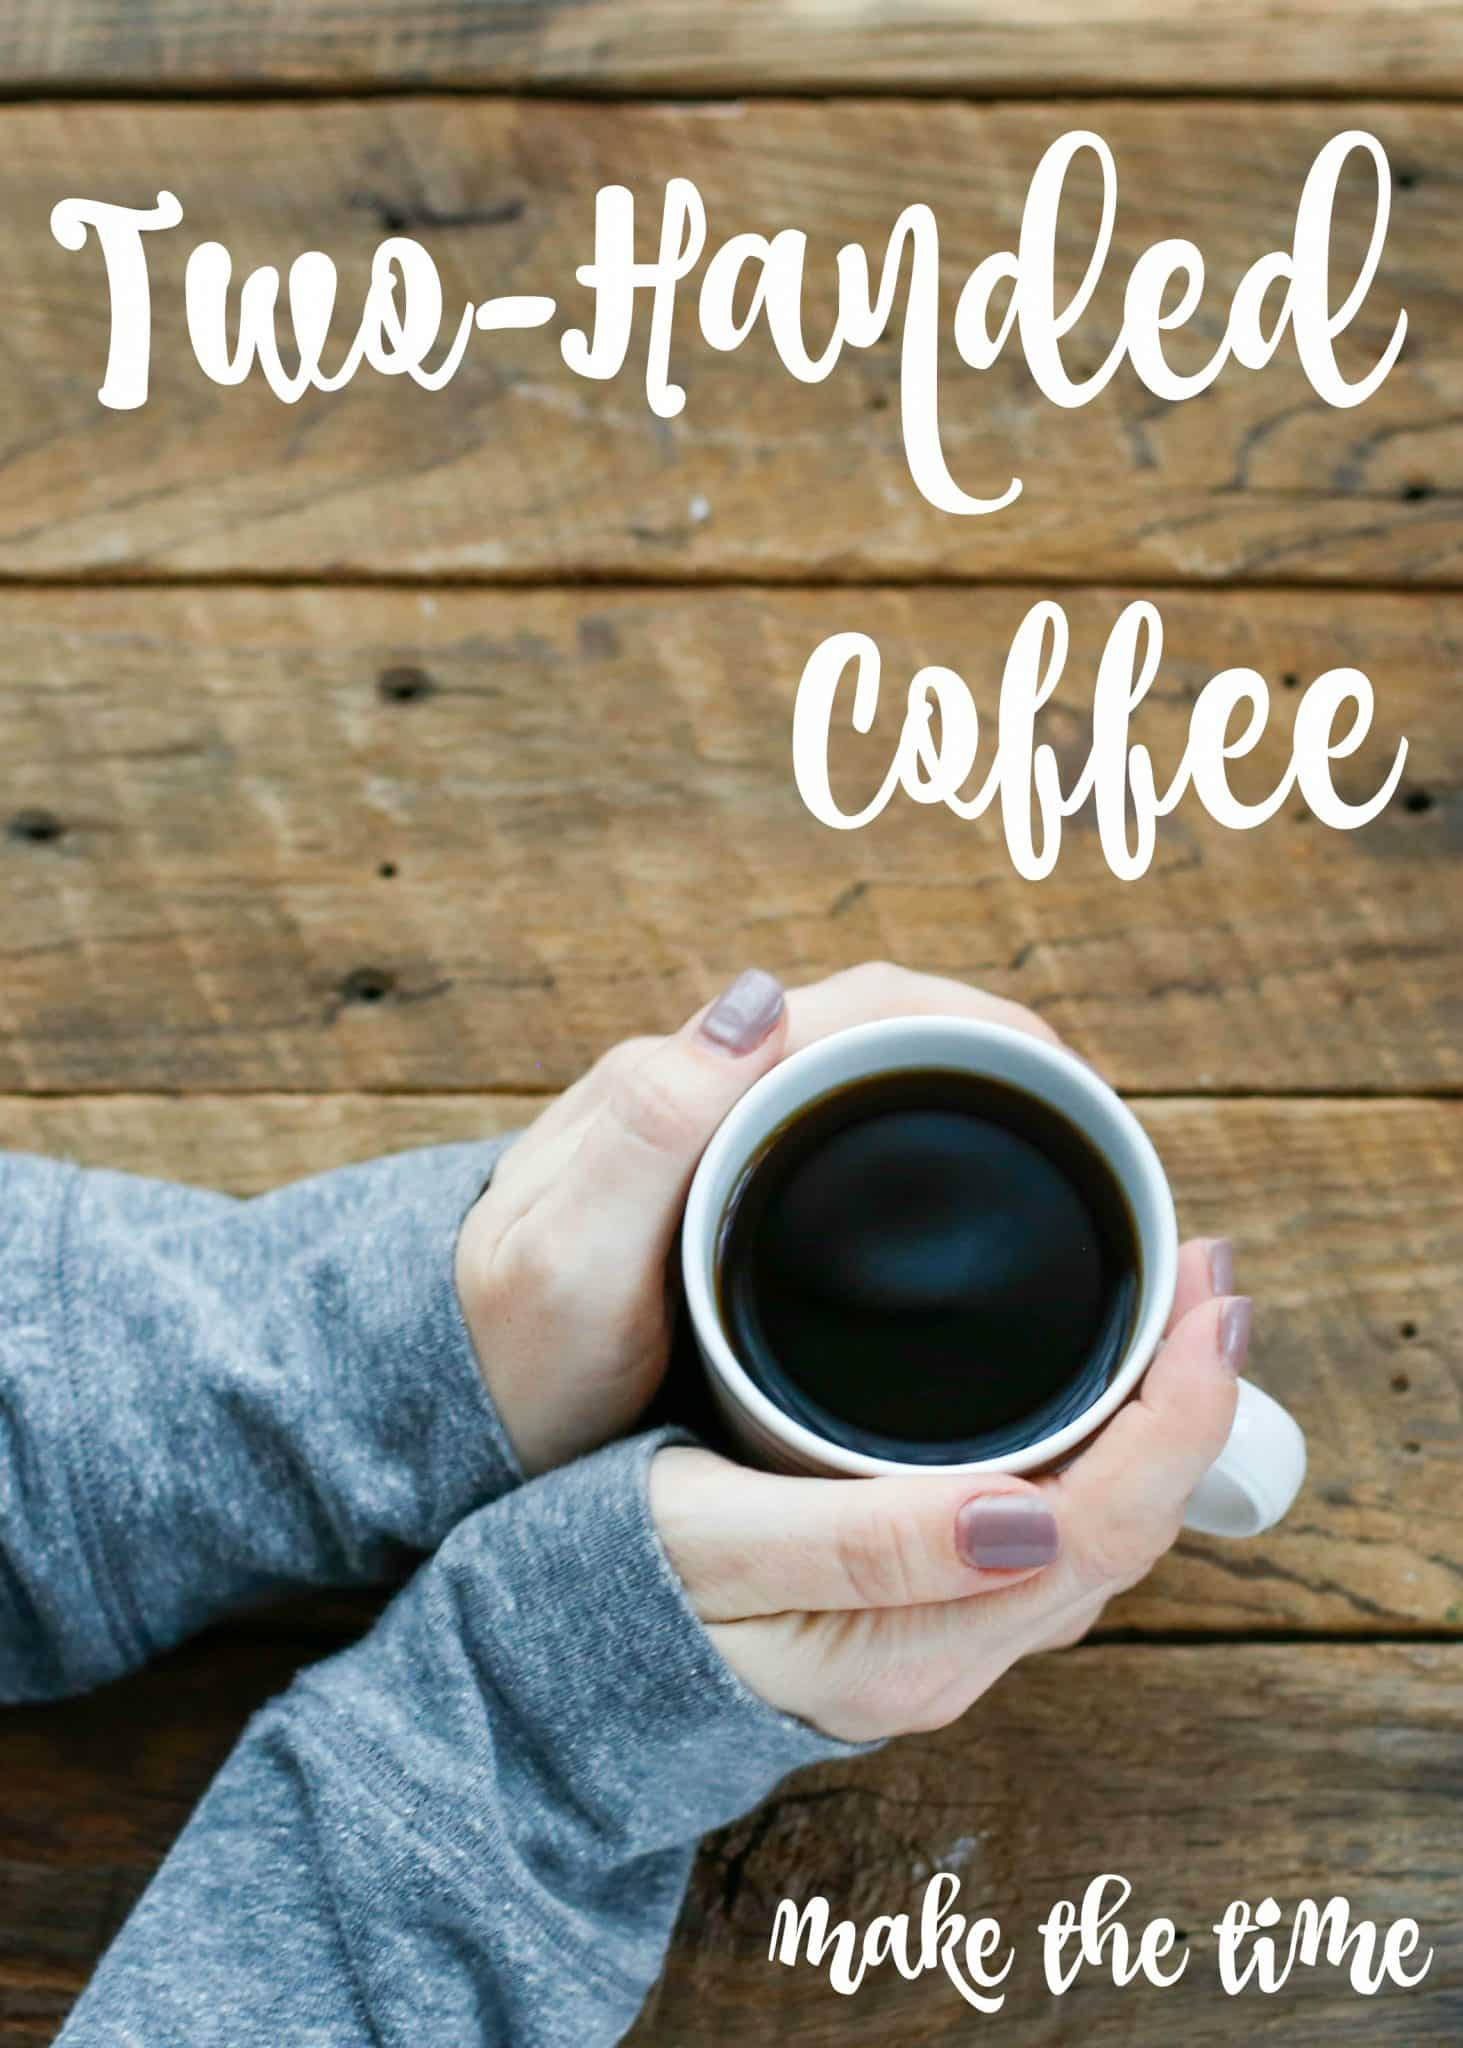 Two Handed Coffee - taking the time and making memories.